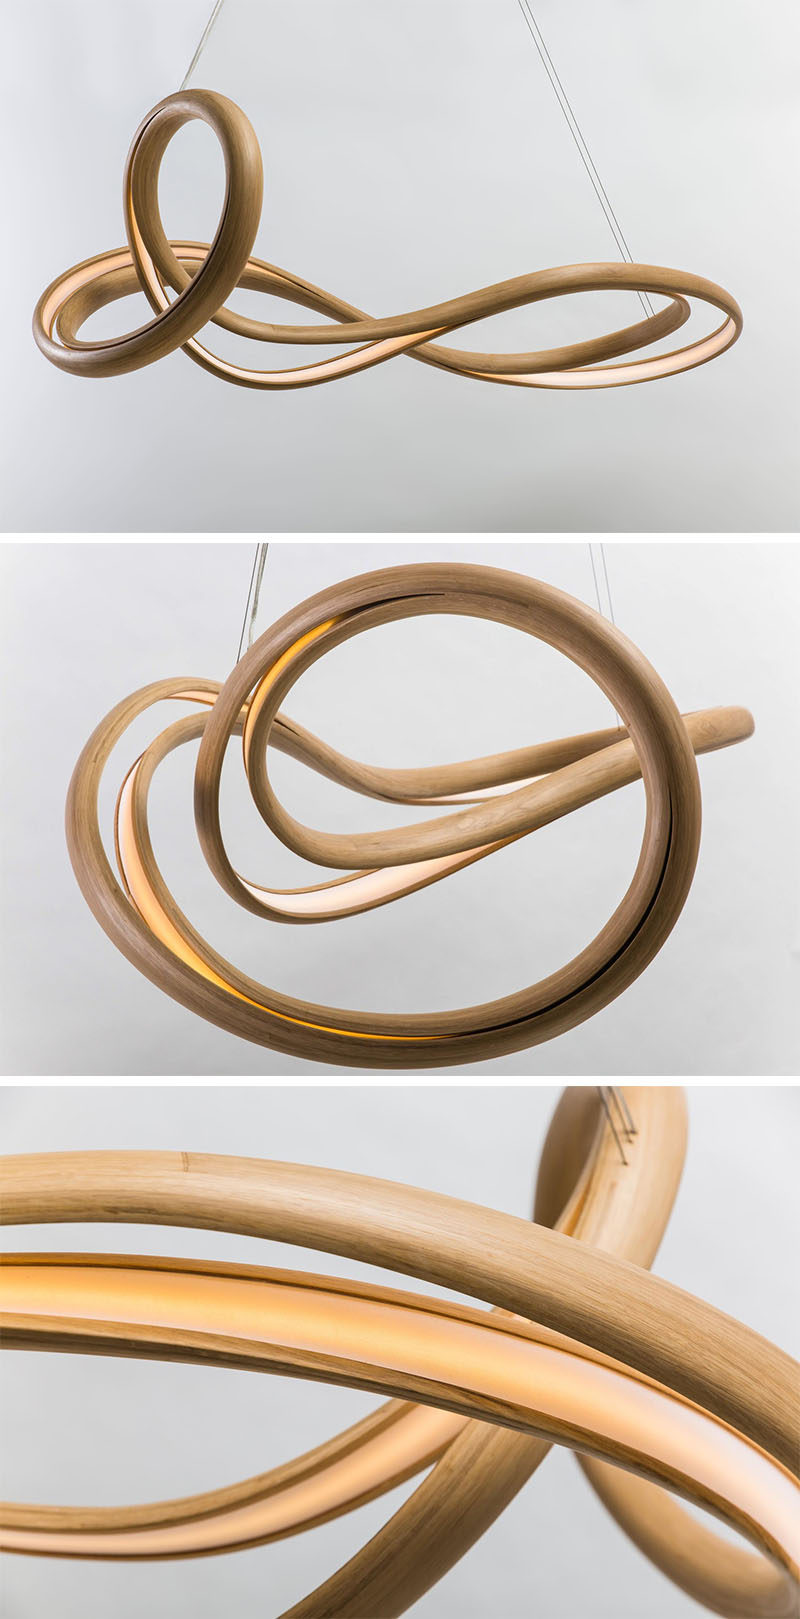 New York based designer John Procario of Procario Design, has combined his love for sculpture and lighting, and transformed it into a series of pieces named Freeform.